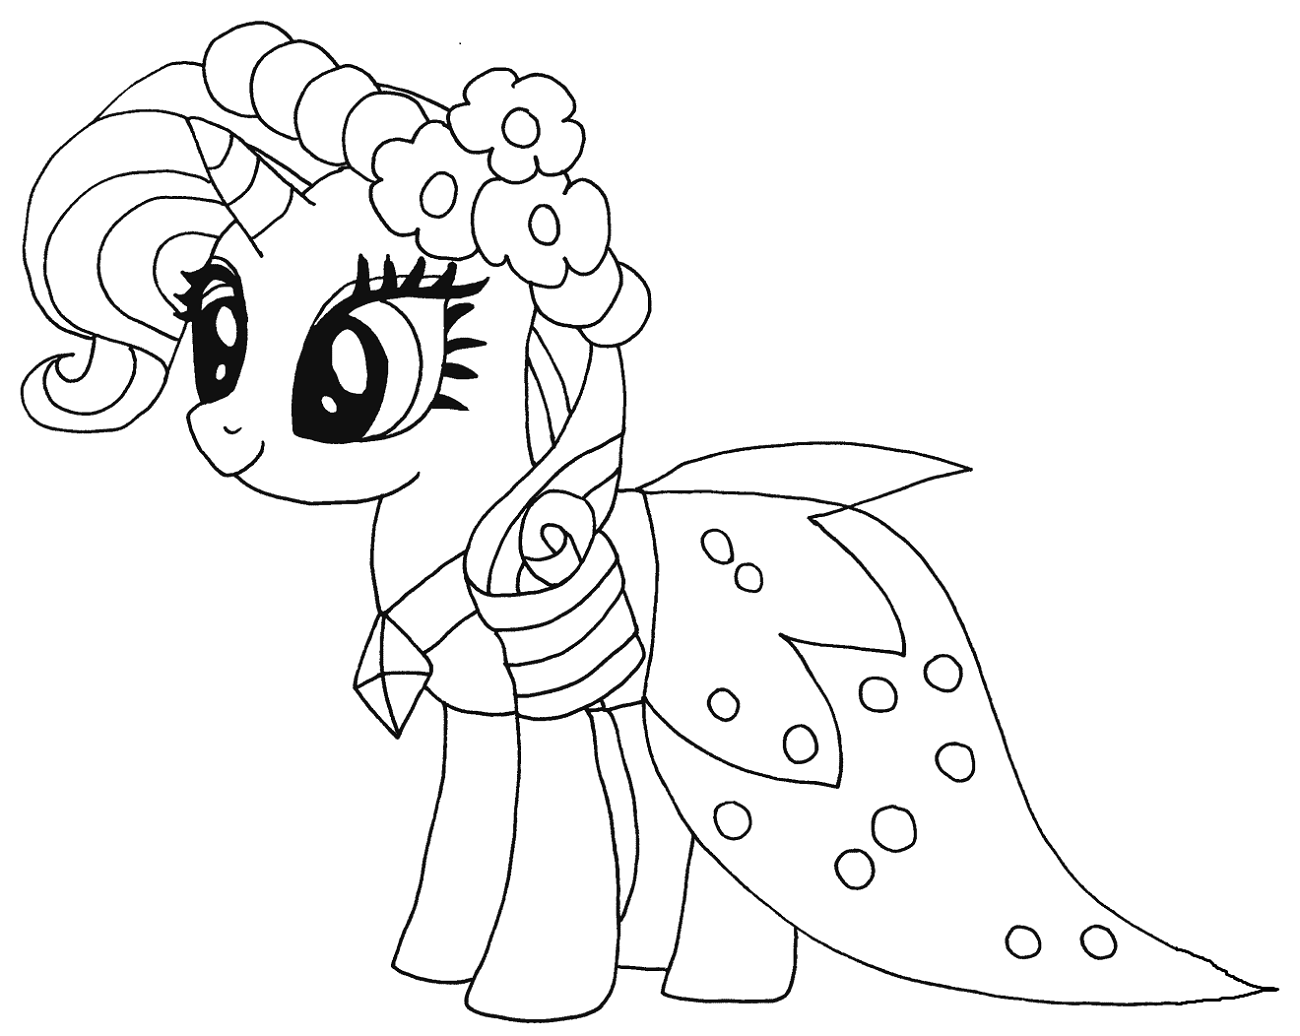 Free My Little Pony Coloring Pages Pdf Printable Shelter Rarity My Little Pony Dibujos De Cumpleanos Dibujos